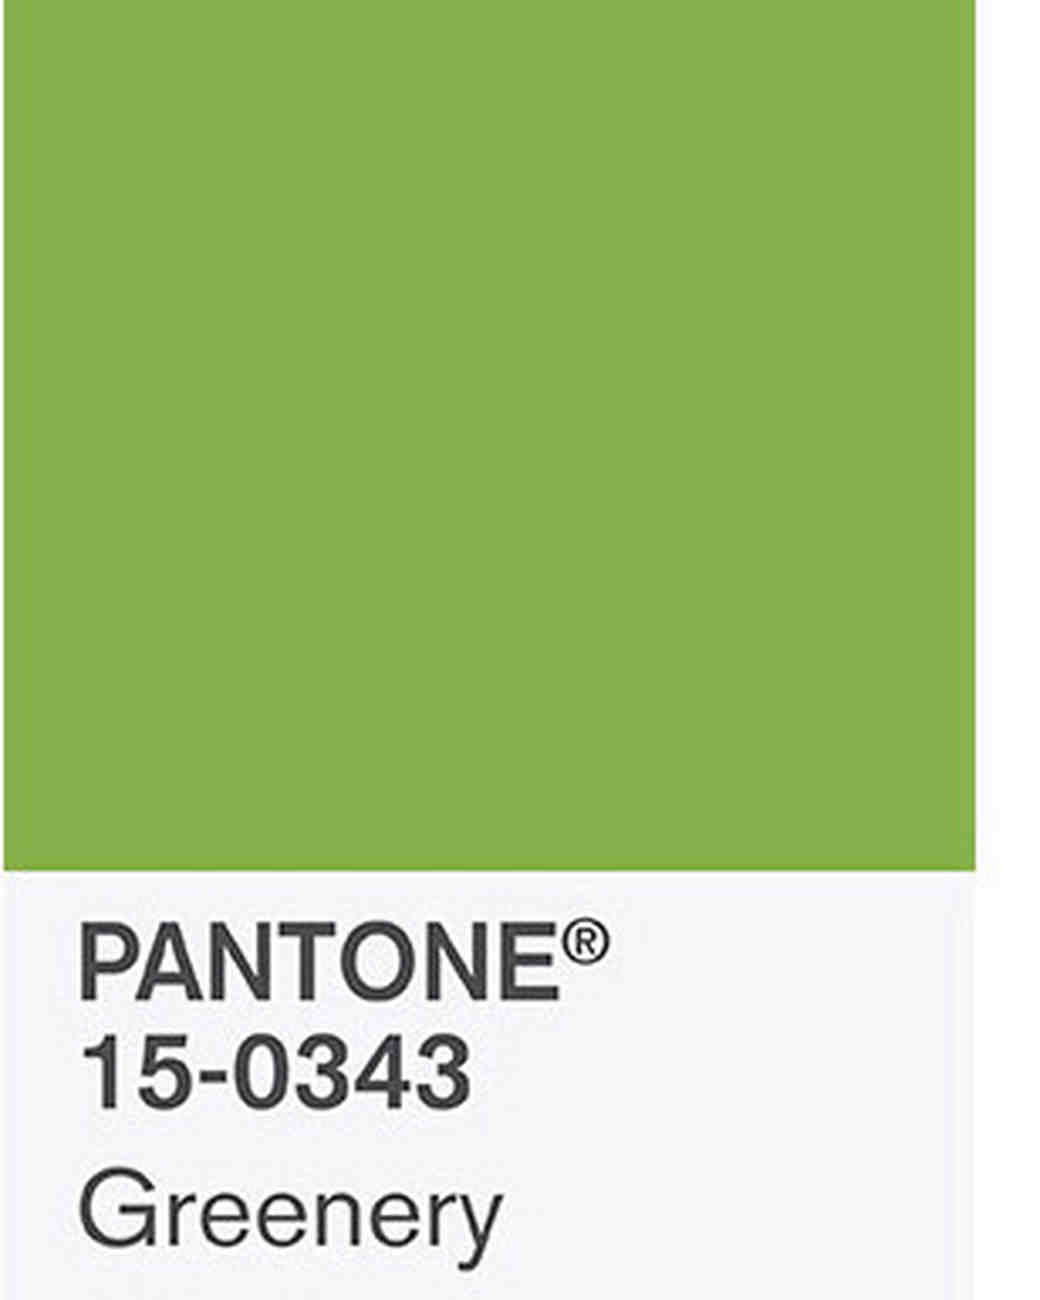 pantone vert chartreuse noeud papillon 100 soie vert chartreuse doux au toucher d j nou ayucar. Black Bedroom Furniture Sets. Home Design Ideas